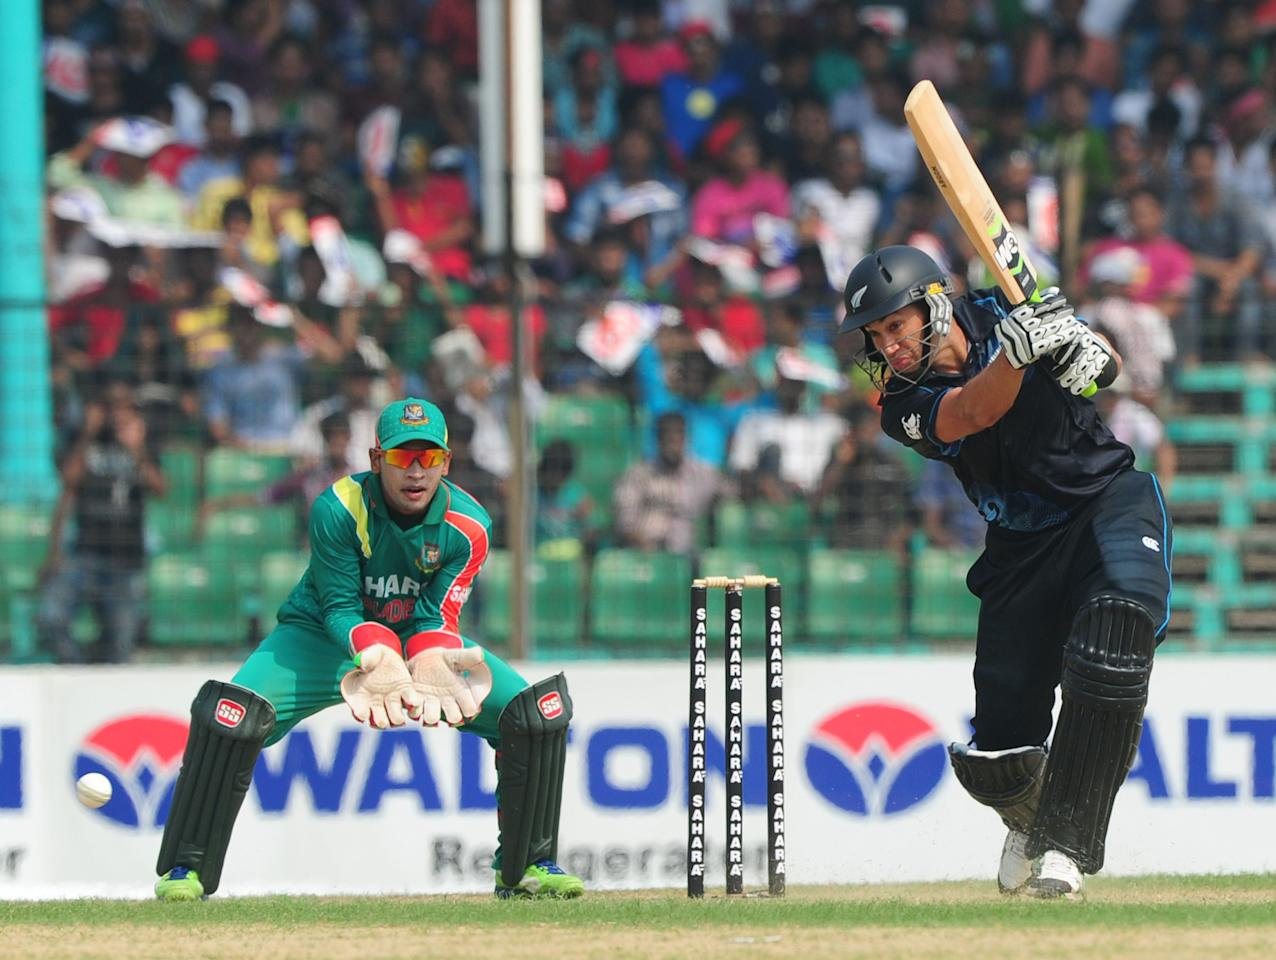 New Zealand batsman Ross Taylor (R) plays a shot as Bangladesh captain Mushfiqur Rahim looks on during the third One-Day International (ODI) cricket match between Bangladesh and New Zealand at Khan Jahan Ali Stadium in Fatullah, on the outskirts of Dhaka on November 3, 2013.  AFP PHOTO/ Munir uz ZAMAN        (Photo credit should read MUNIR UZ ZAMAN/AFP/Getty Images)